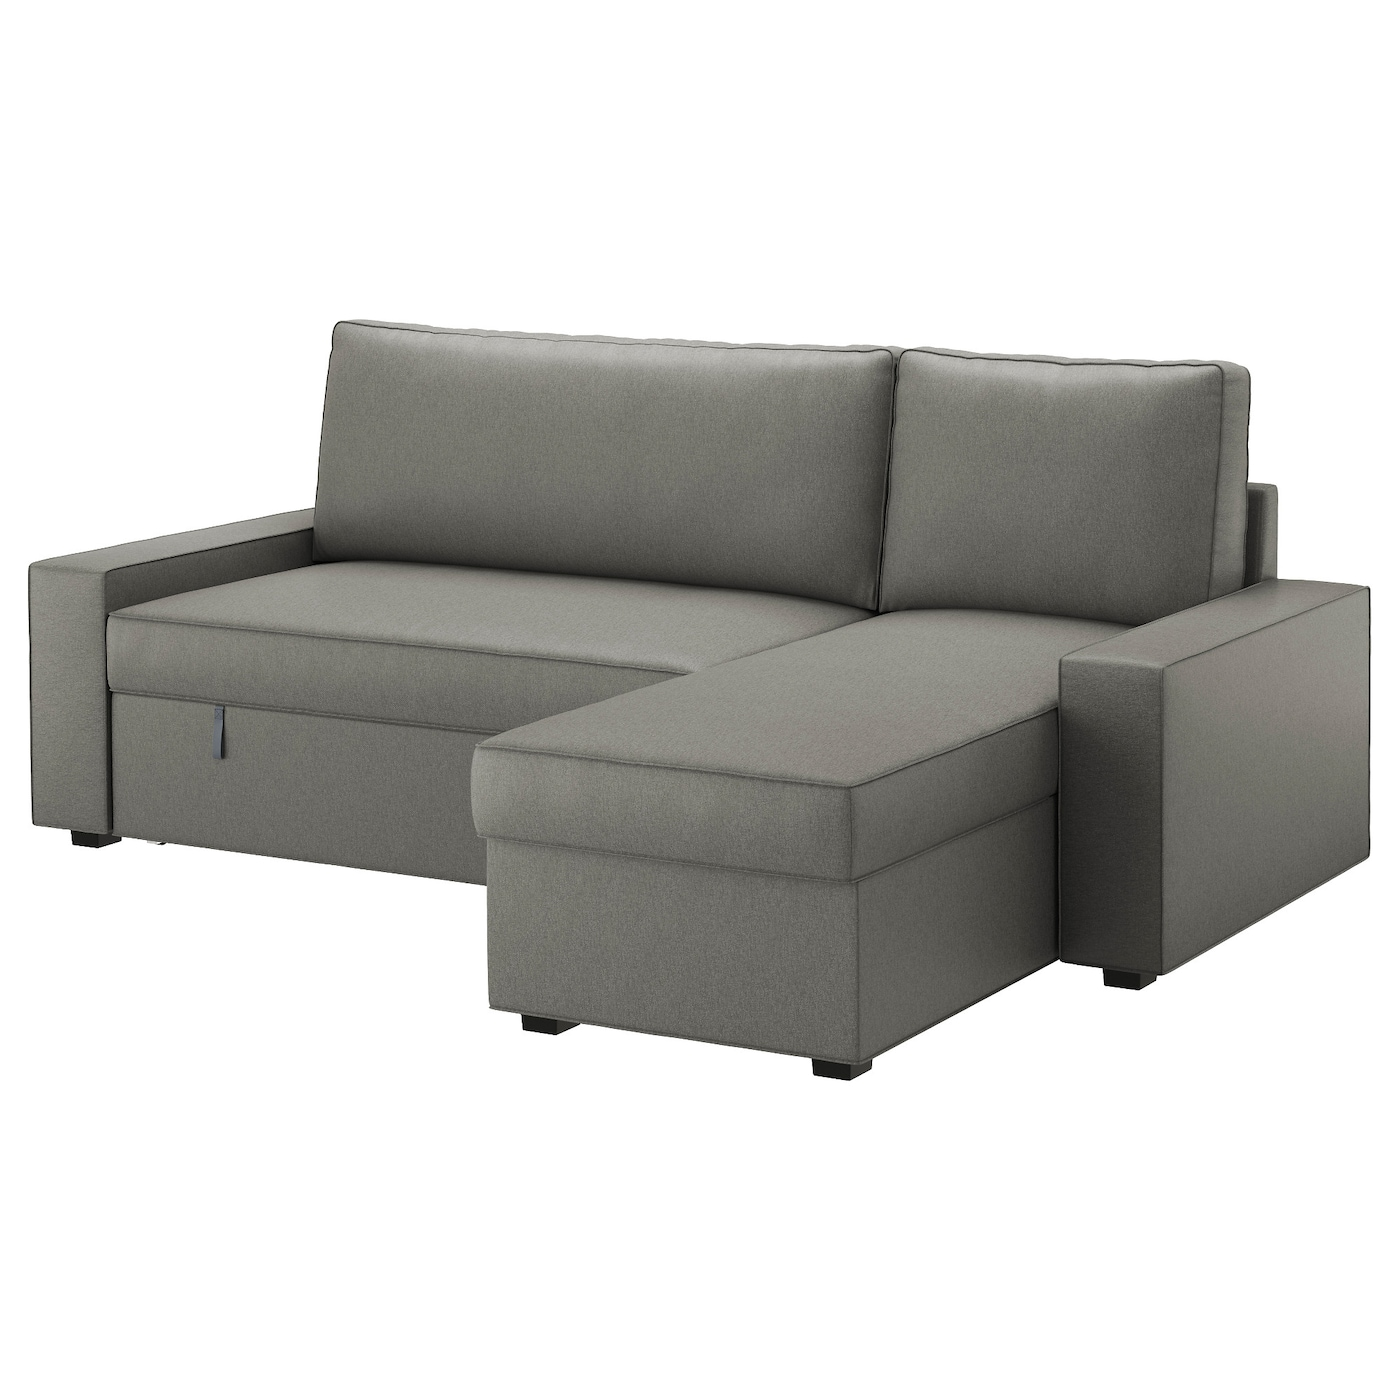 vilasund cover sofa bed with chaise longue borred grey green ikea rh ikea com chaise lounge sofa bed chaise longue sofa bed reviews